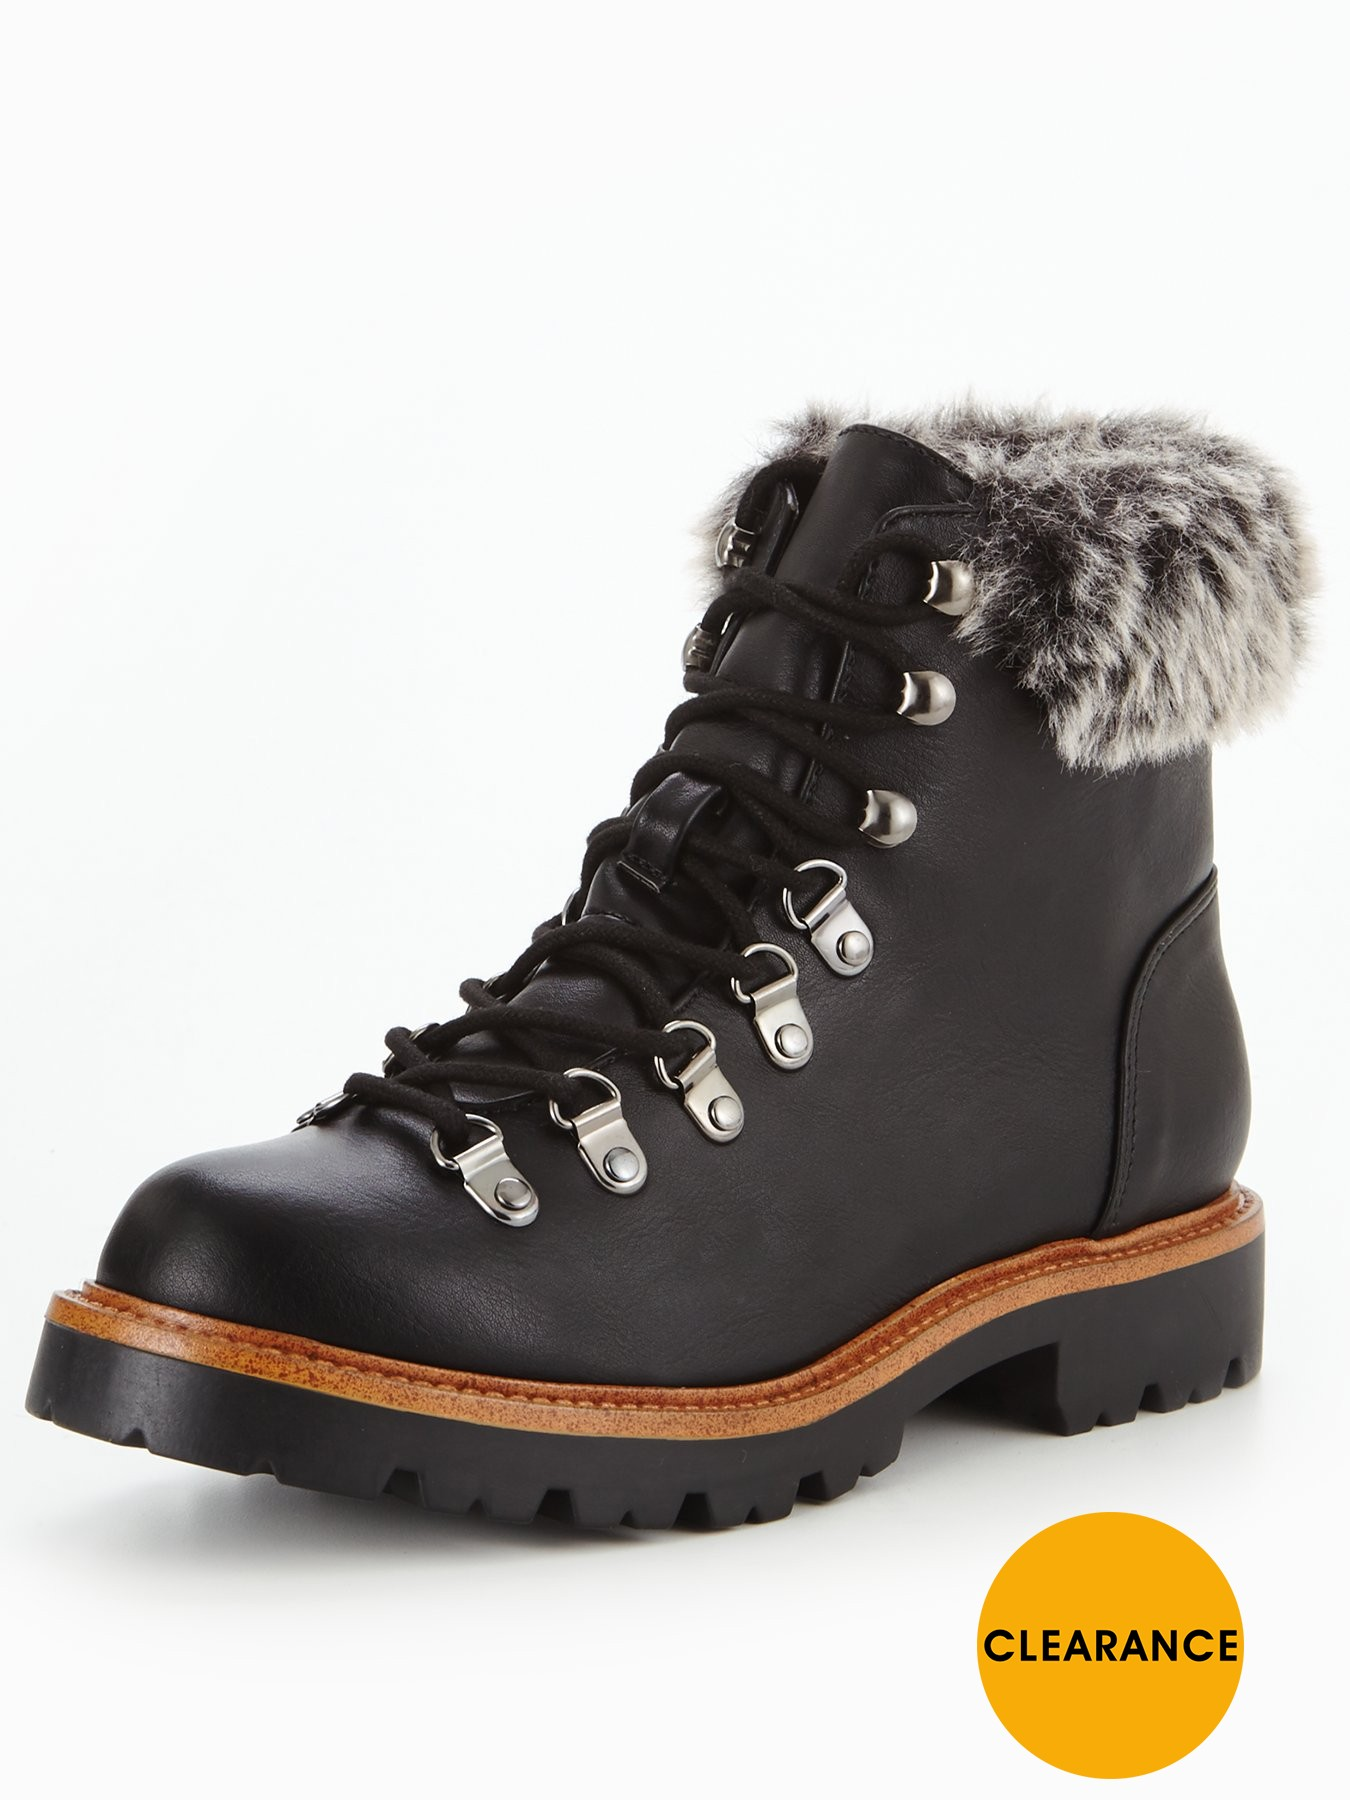 V by Very Fey Chunky Sole Faux Fur Hiker Boot Black 1600192905 Women's Shoes V by Very Boots